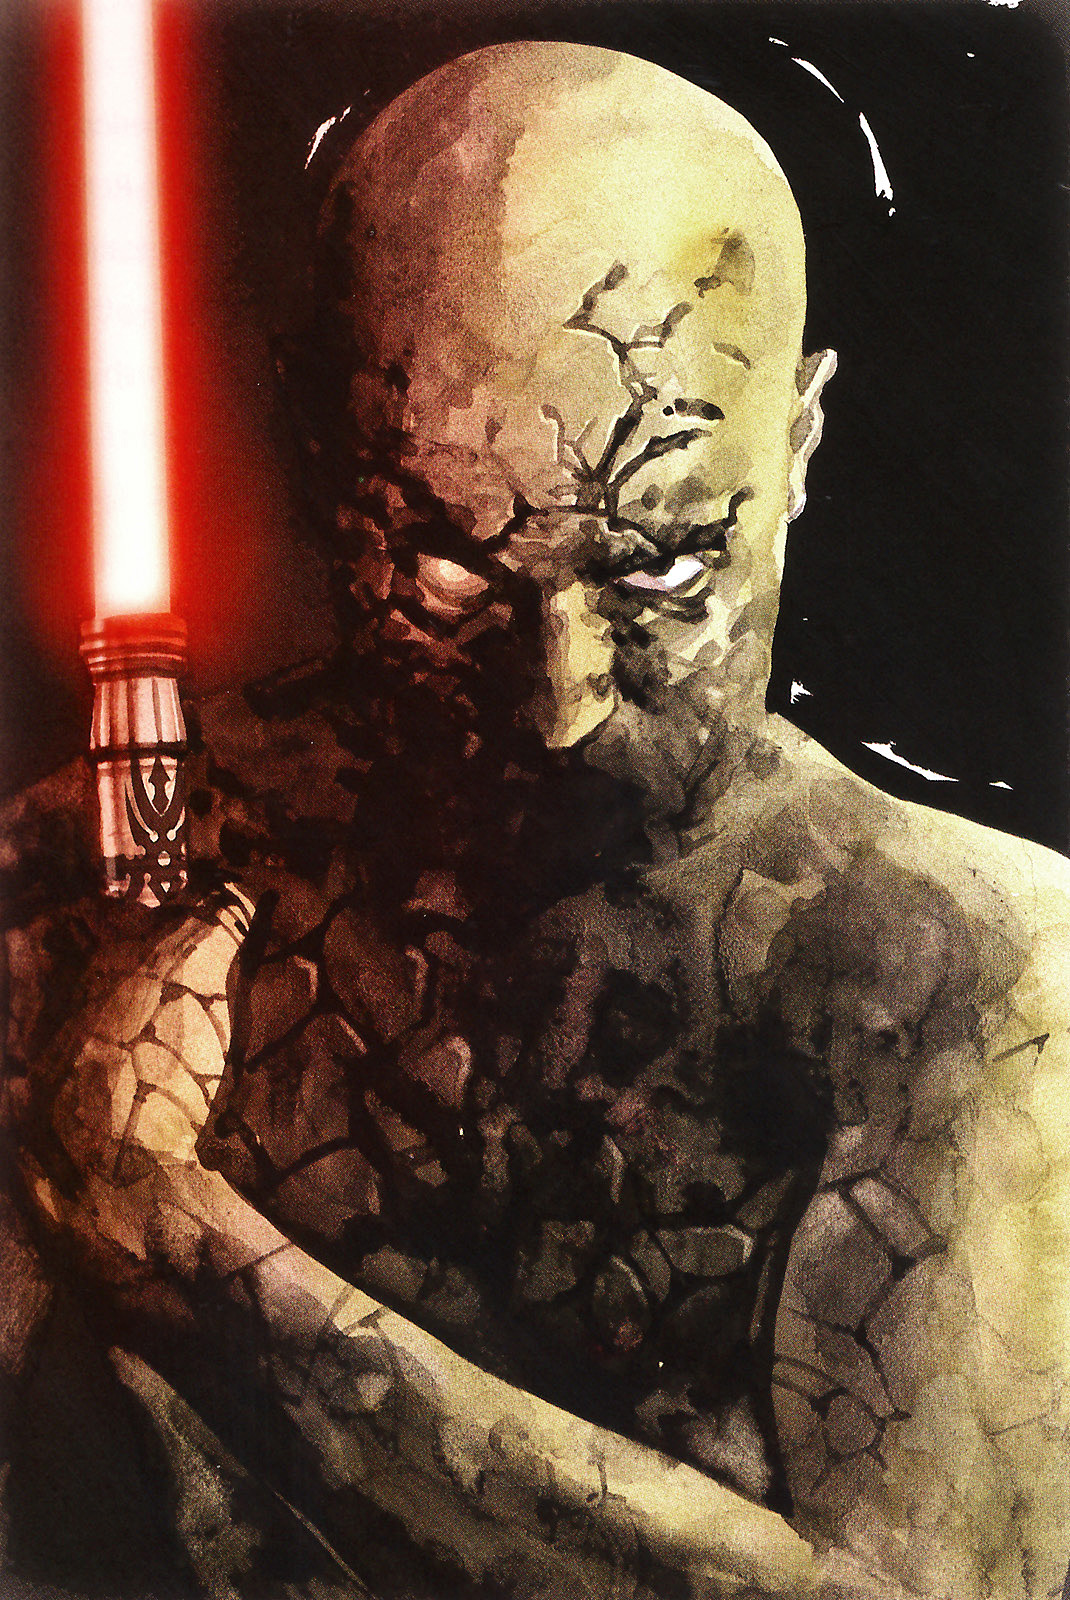 Star Wars, Darth Sion, Lord of Pain, member of the Sith Triumvirate in the First Jedi Purge